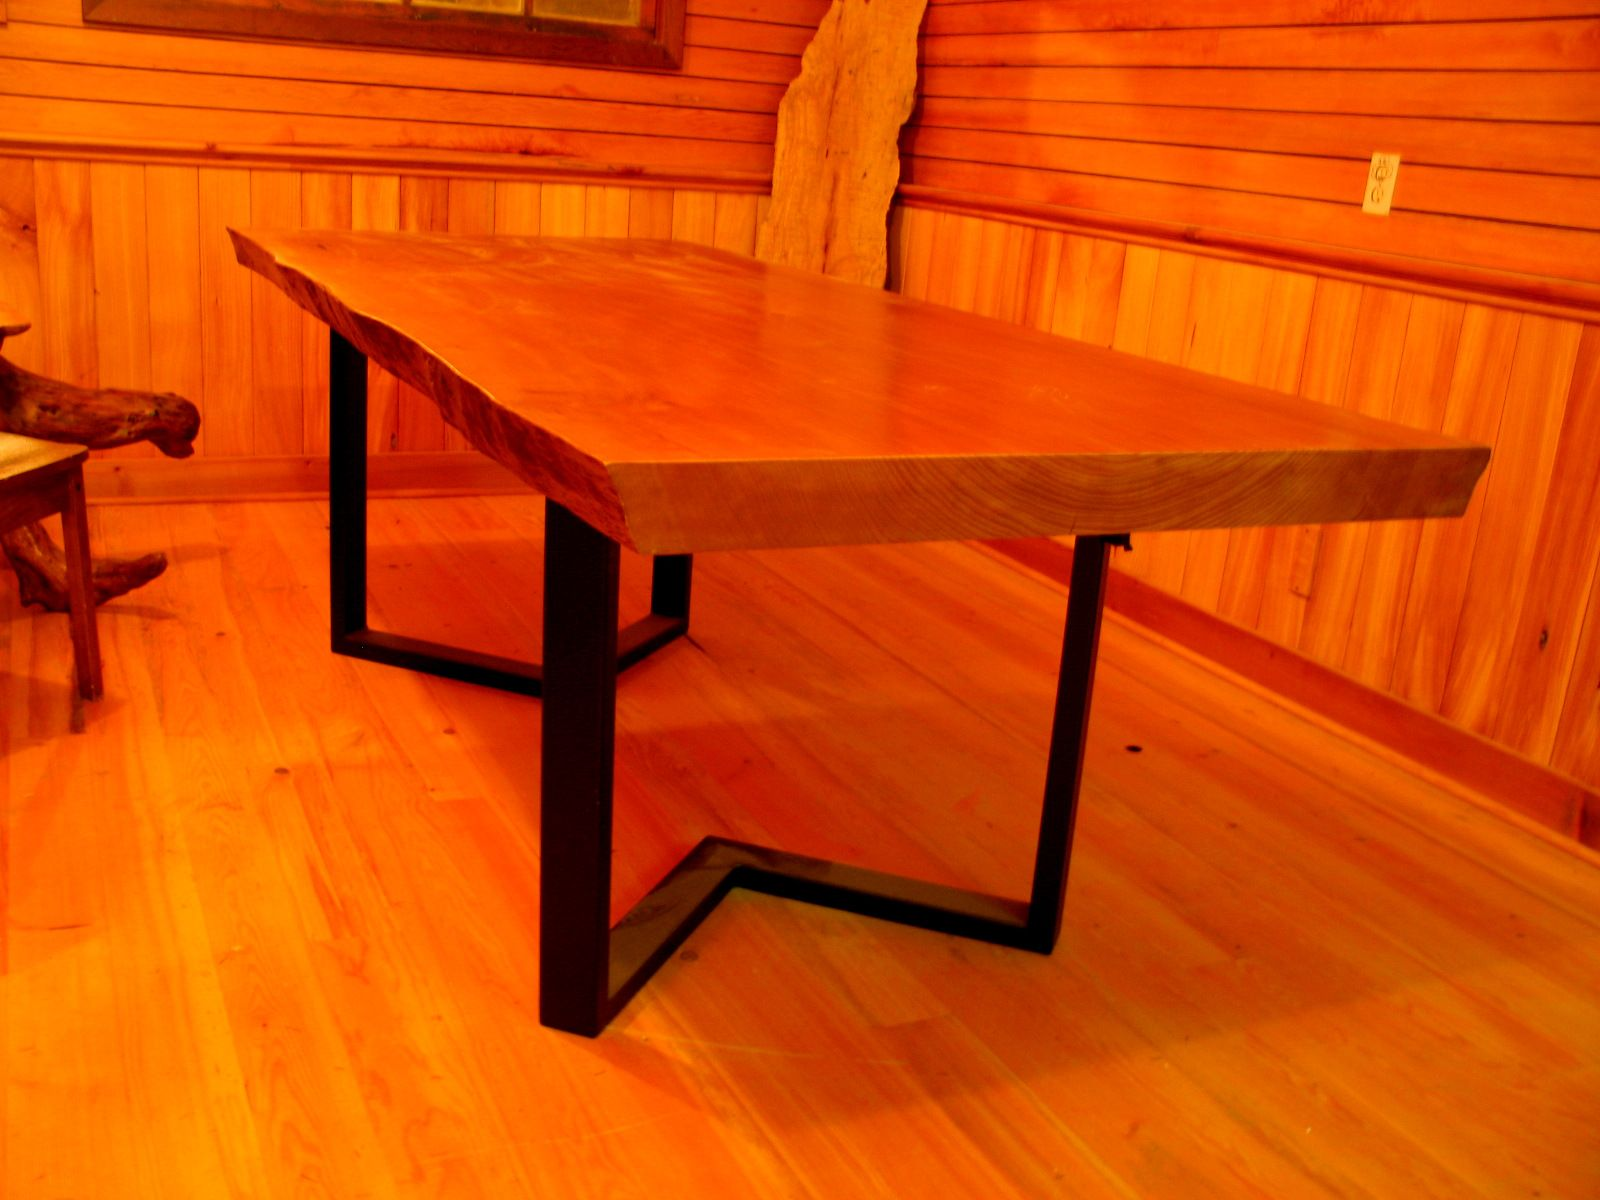 Sitka spruce dining table with metal base | Dining table ...